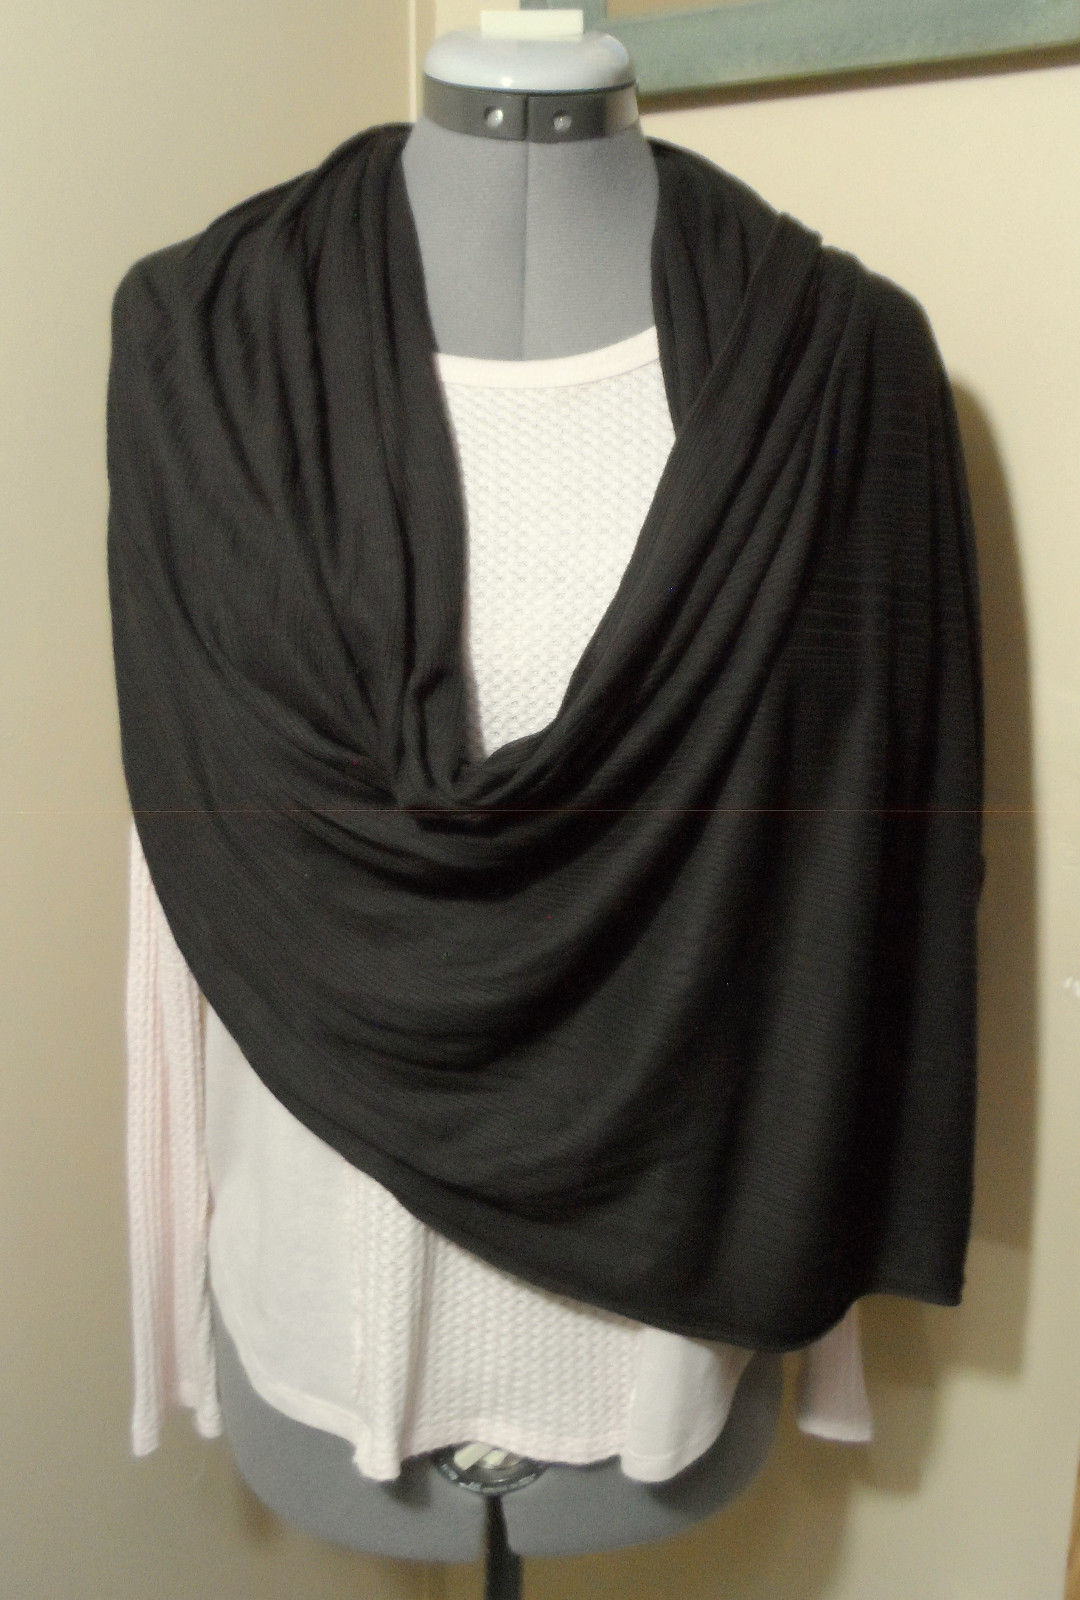 "Primary image for Multi-way Cowl Infinity Scarf Brown stretch knit 44""x112"" Wrap Shawl semi sheer"